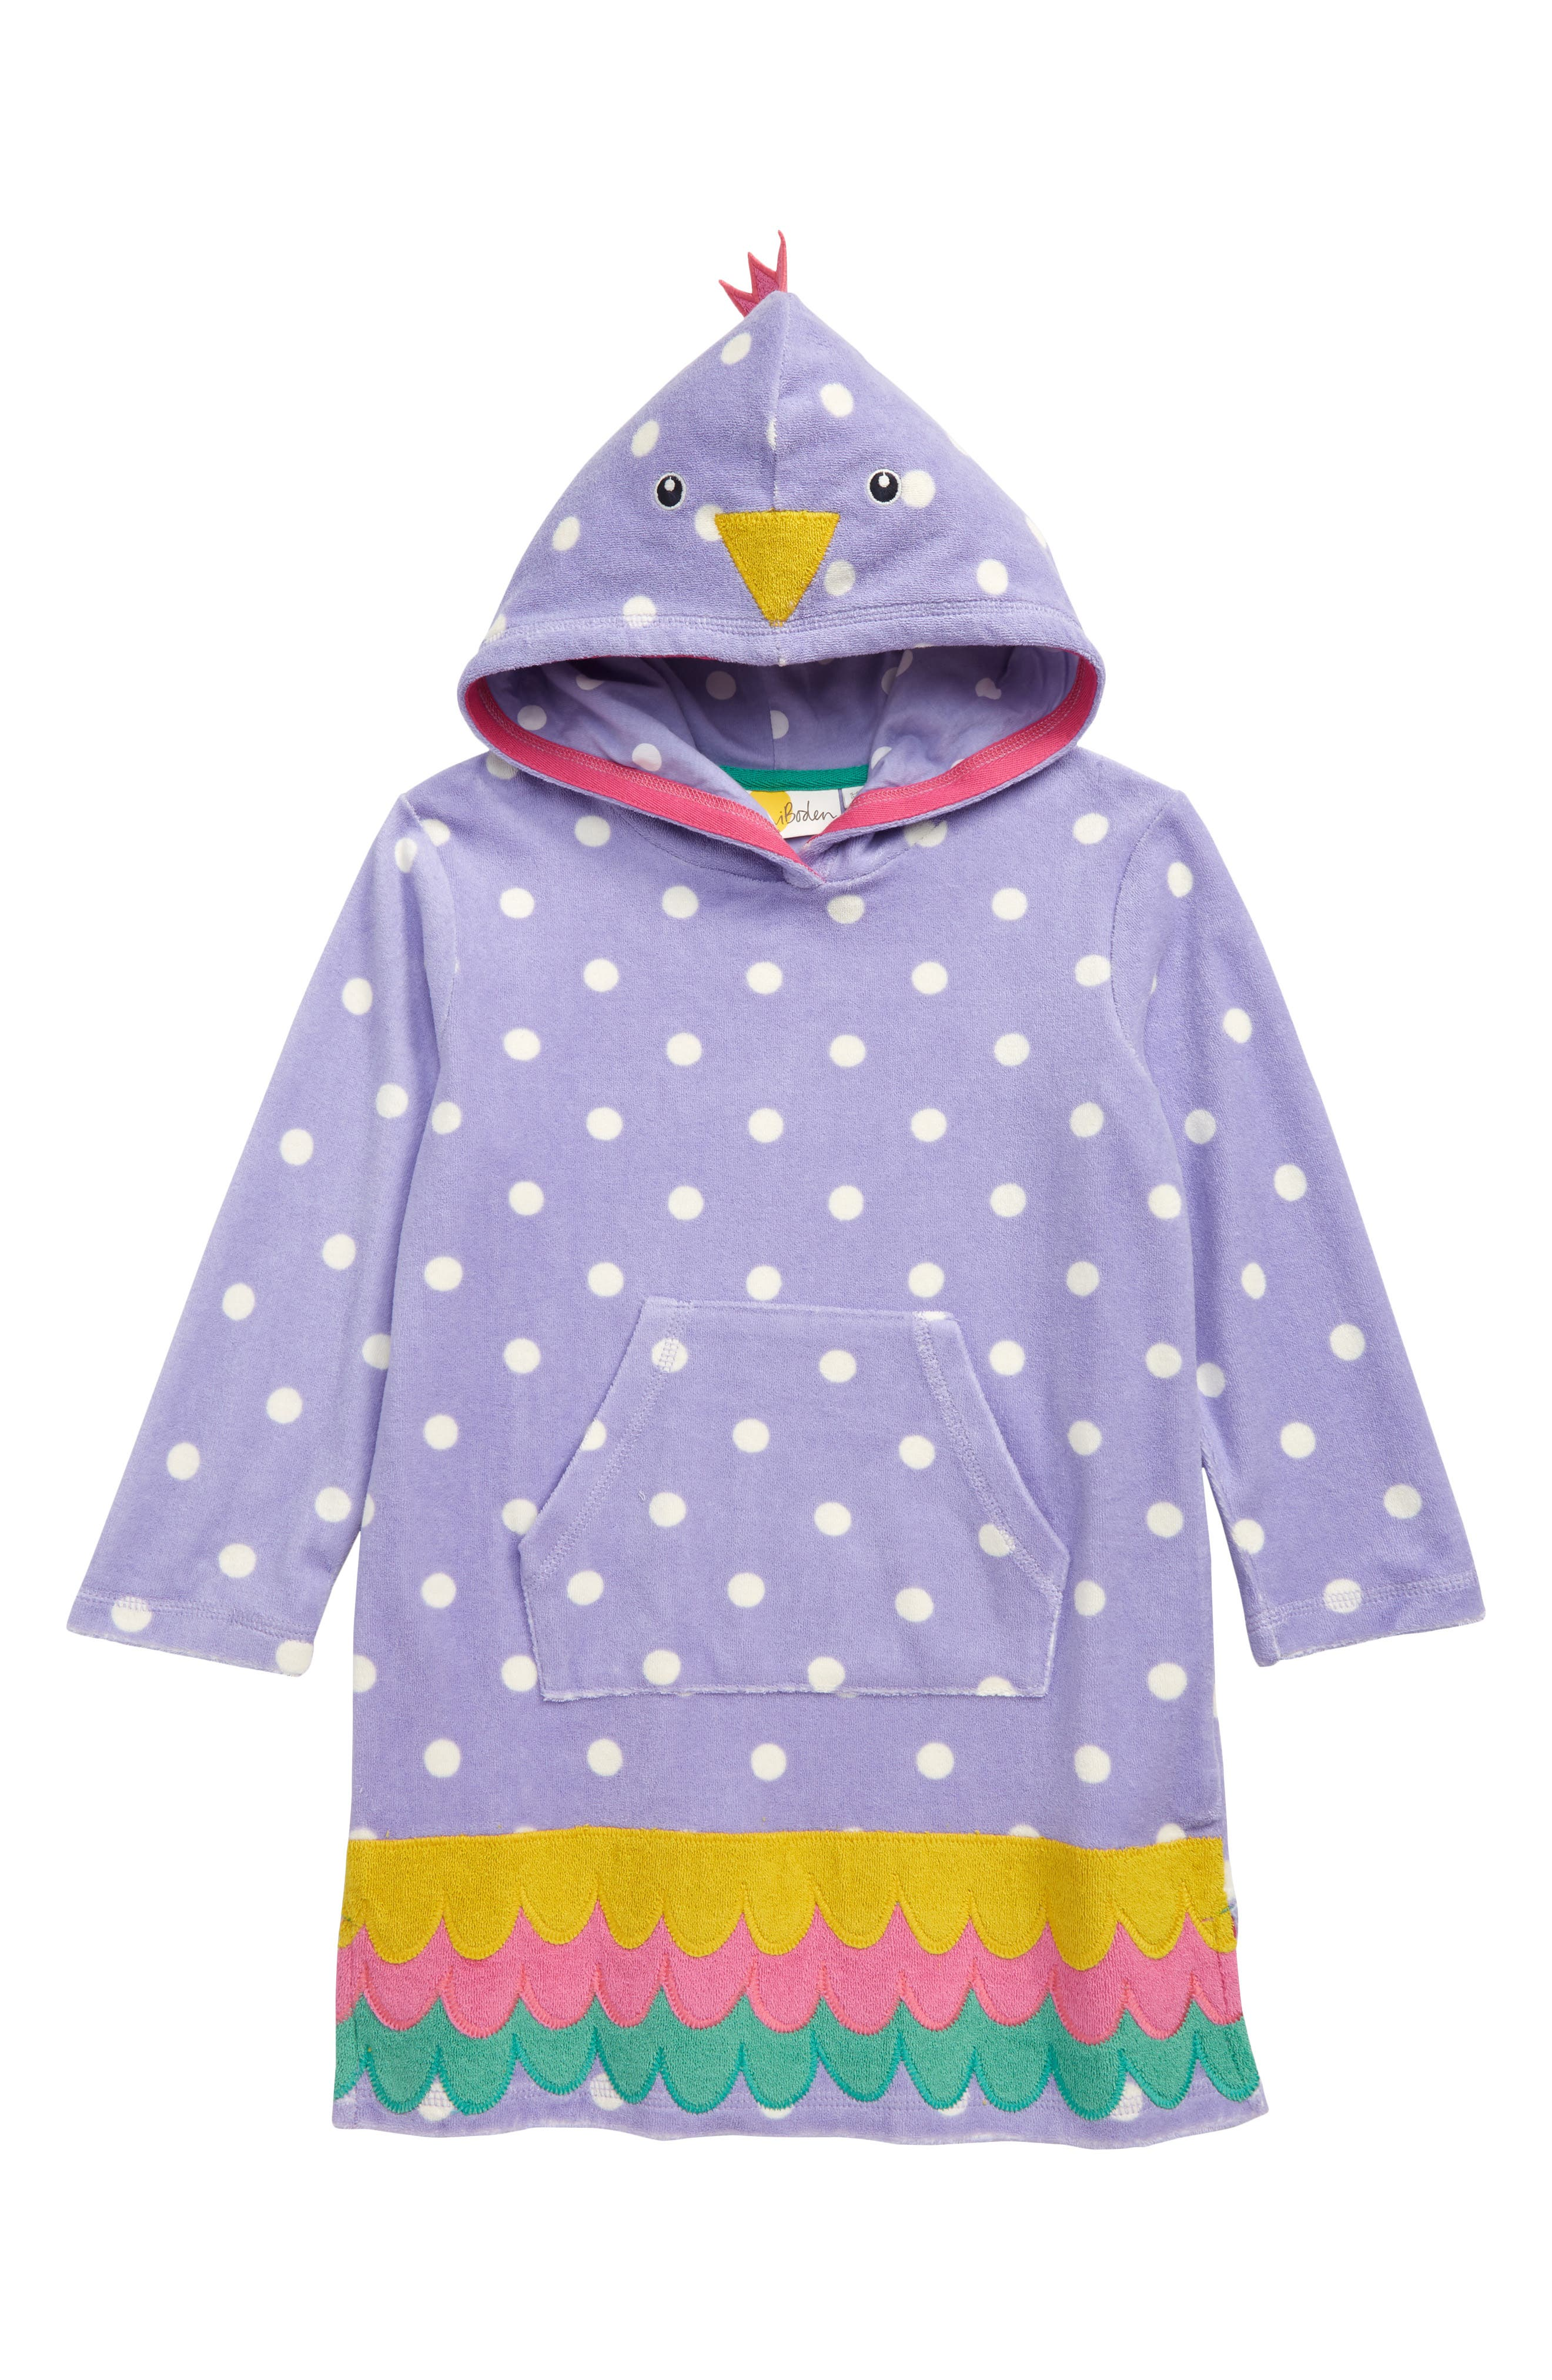 Girls Mini Boden Fun Terry Hooded CoverUp Dress Size 67Y  Purple